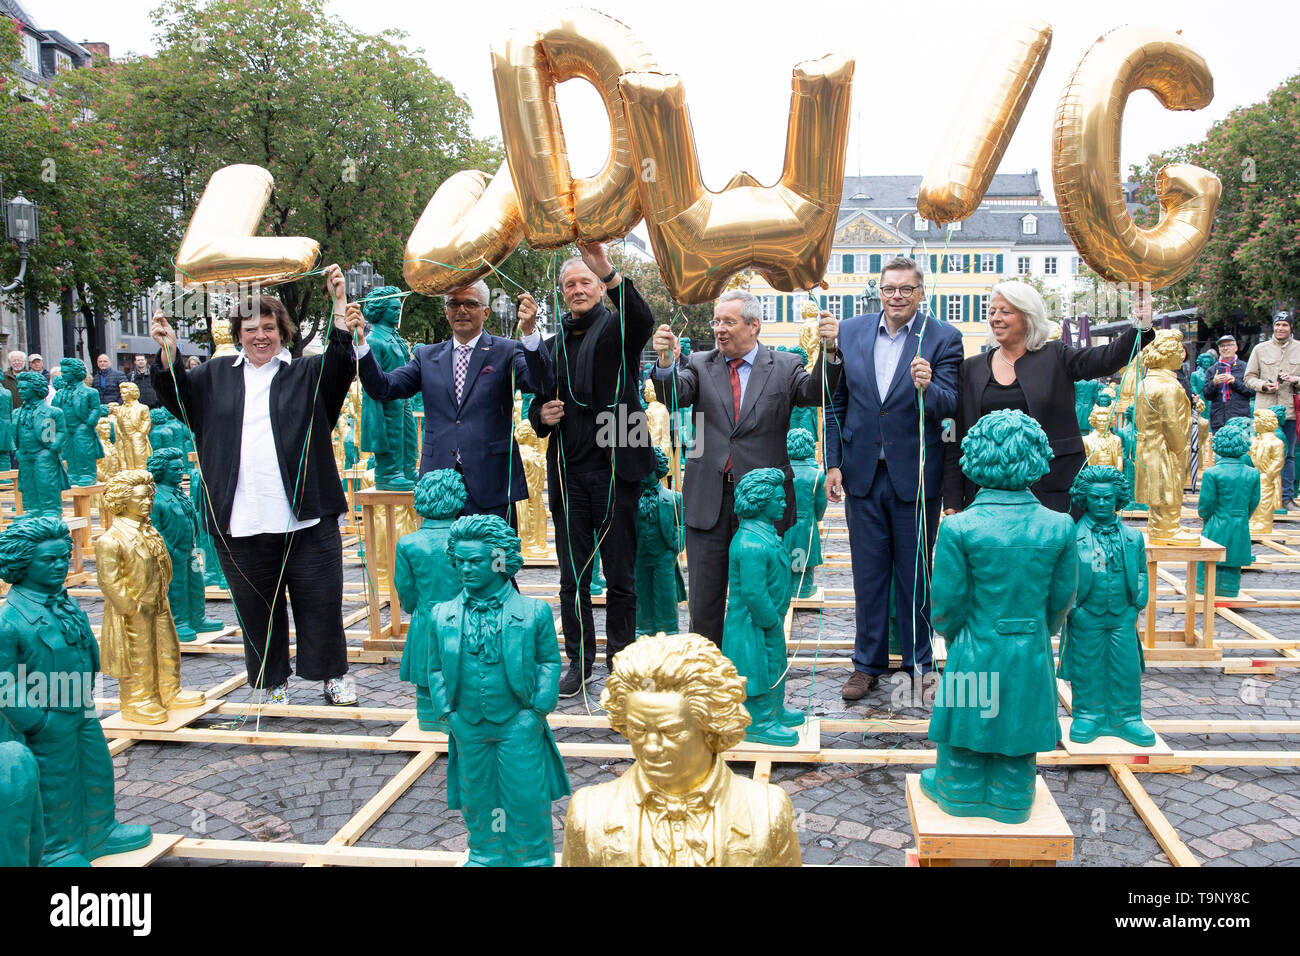 Patron Ashok SRIDHARAN (2.left to right), Mayor of the City of Bonn, opens with artist Prof. Dr. med. Ottmar HOERL (HÖRL) (3.left to right) the art installation on the Muensterplatz. A public action on the upcoming 250th birthday of Ludwig van Beethoven; on 17.05.2019 in Bonn/Germany. | Usage worldwide - Stock Image